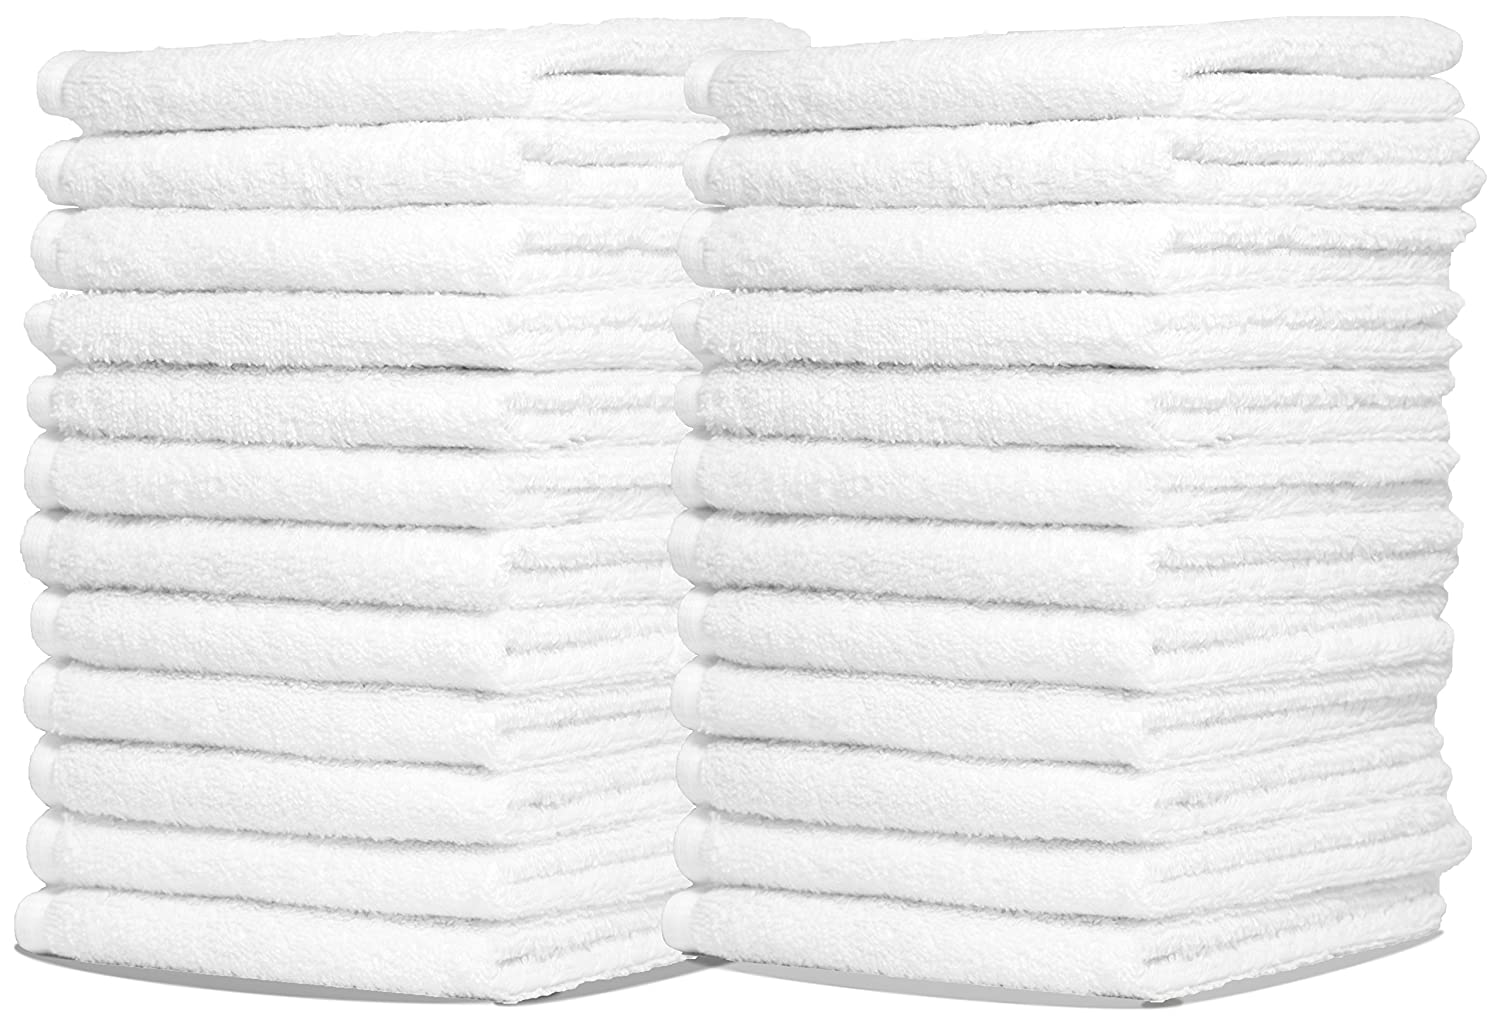 Zeppoli Wash Cloth Kitchen Towels 24Pack 100 Natural Cotton Bath Towels 12 x 12 Hand Towels